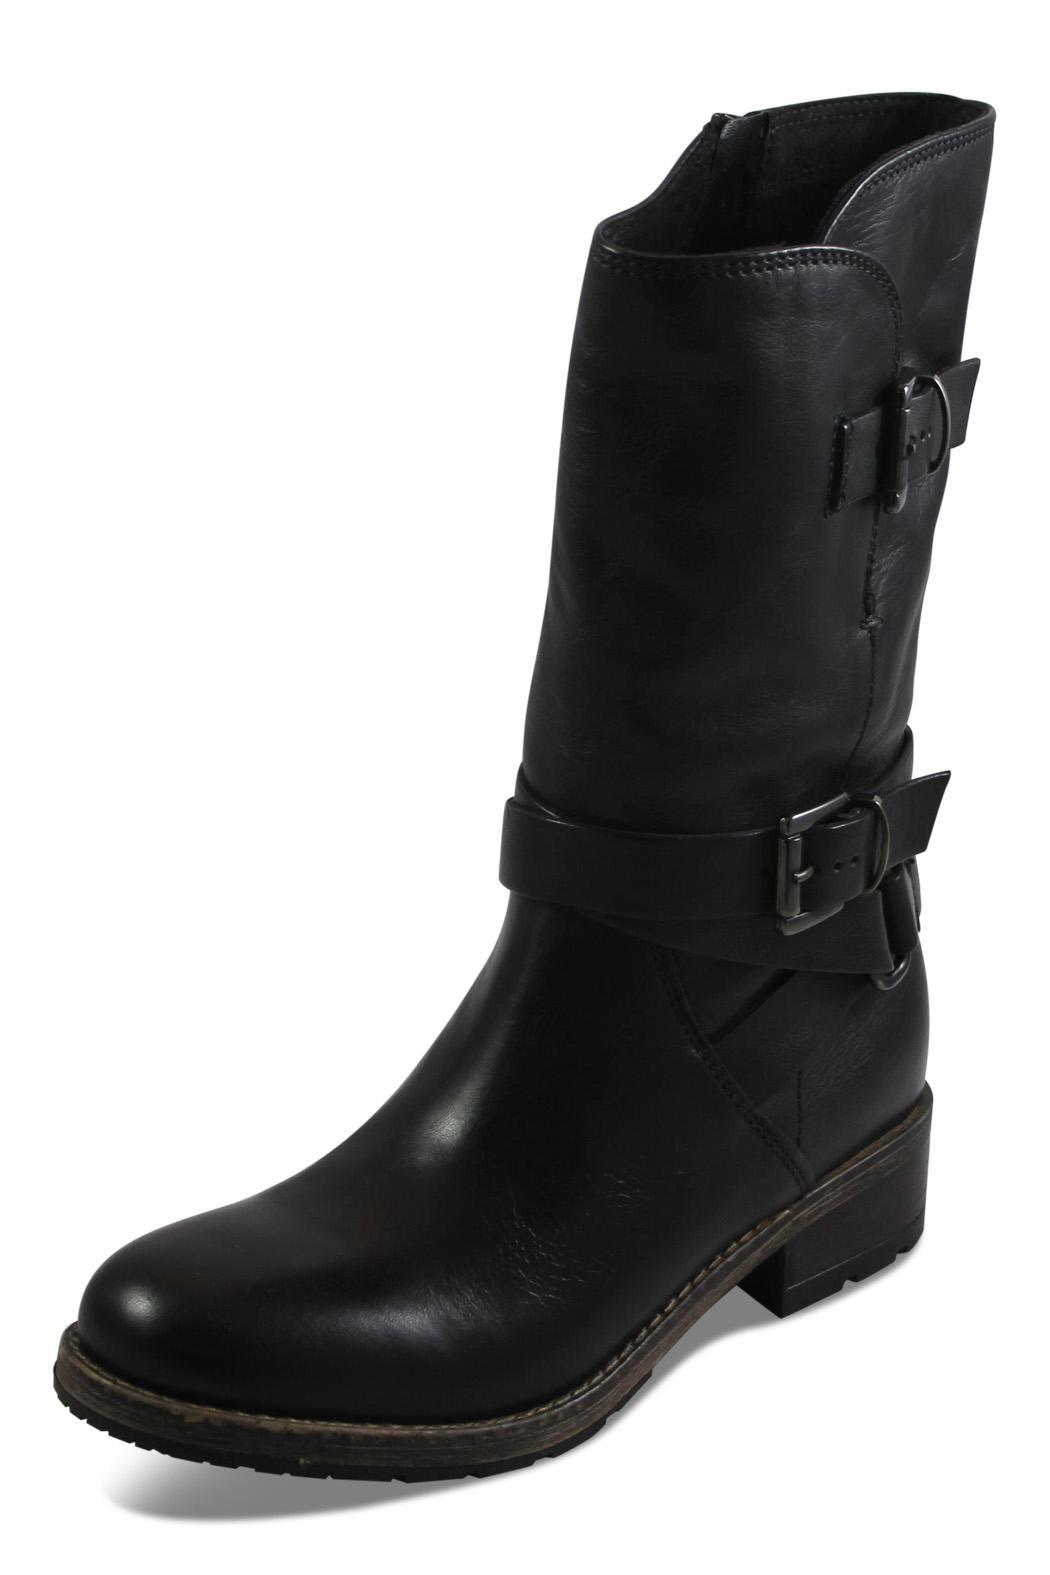 clarks black mid boot from columbia by big boot